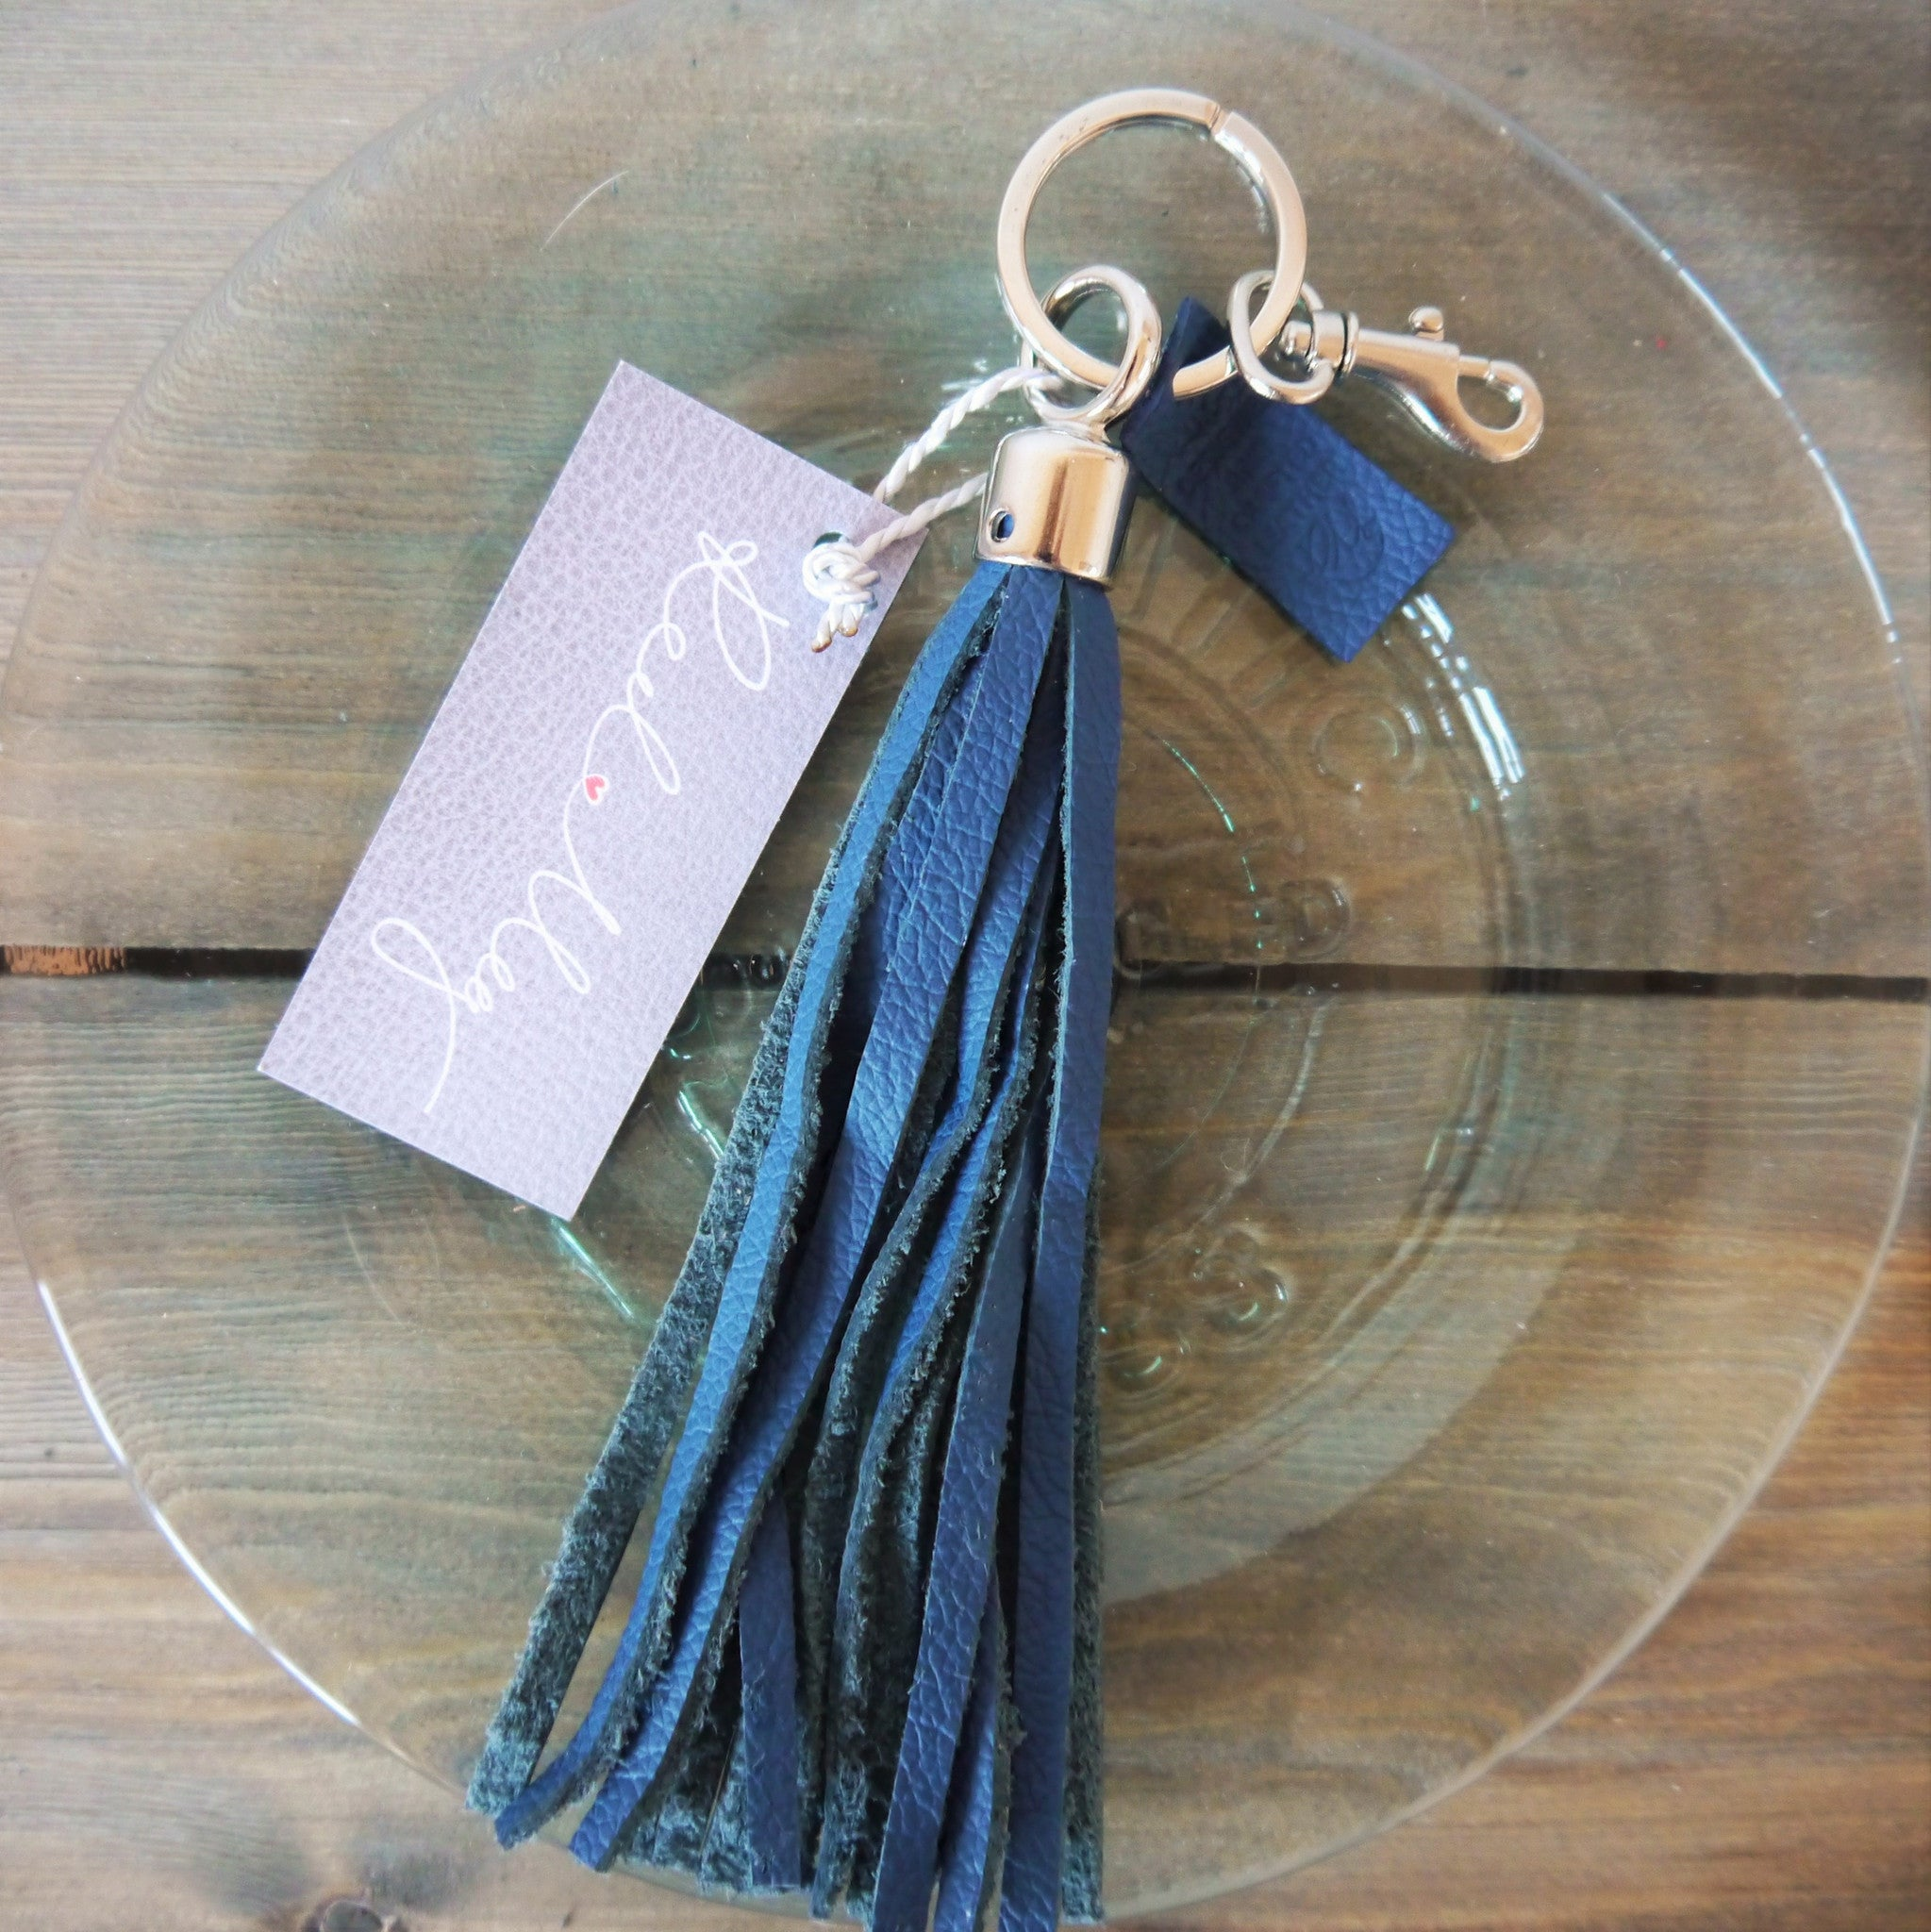 S/S '16 Bluebell Tassel Key Ring / Bag Charm - Navy